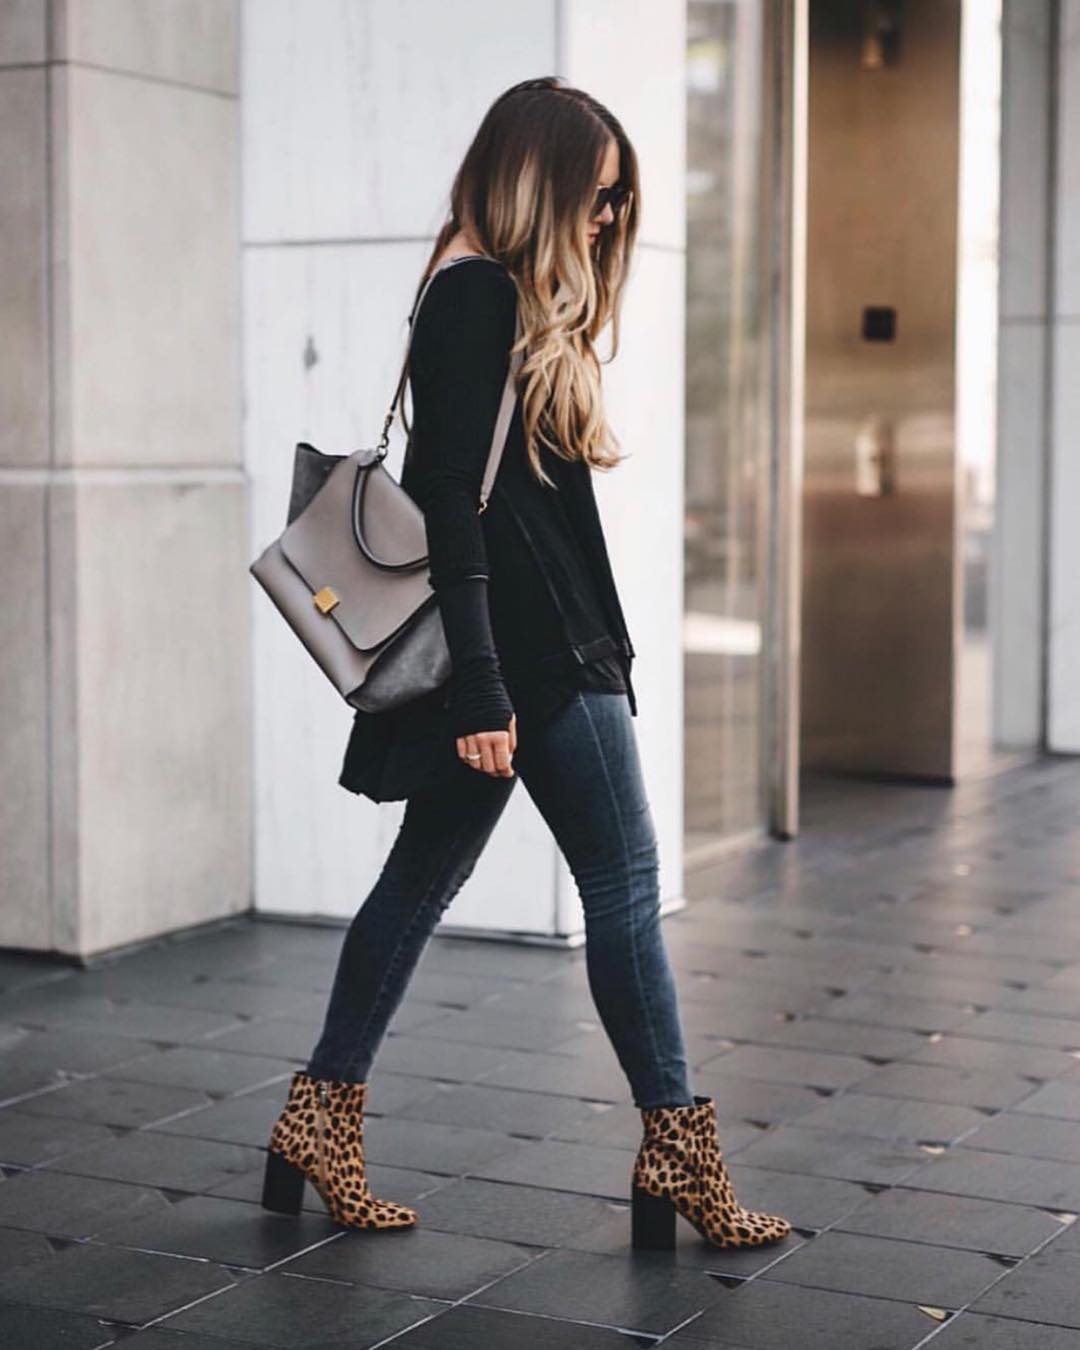 How To Wear Leopard Print Ankle Boots This Fall 2020